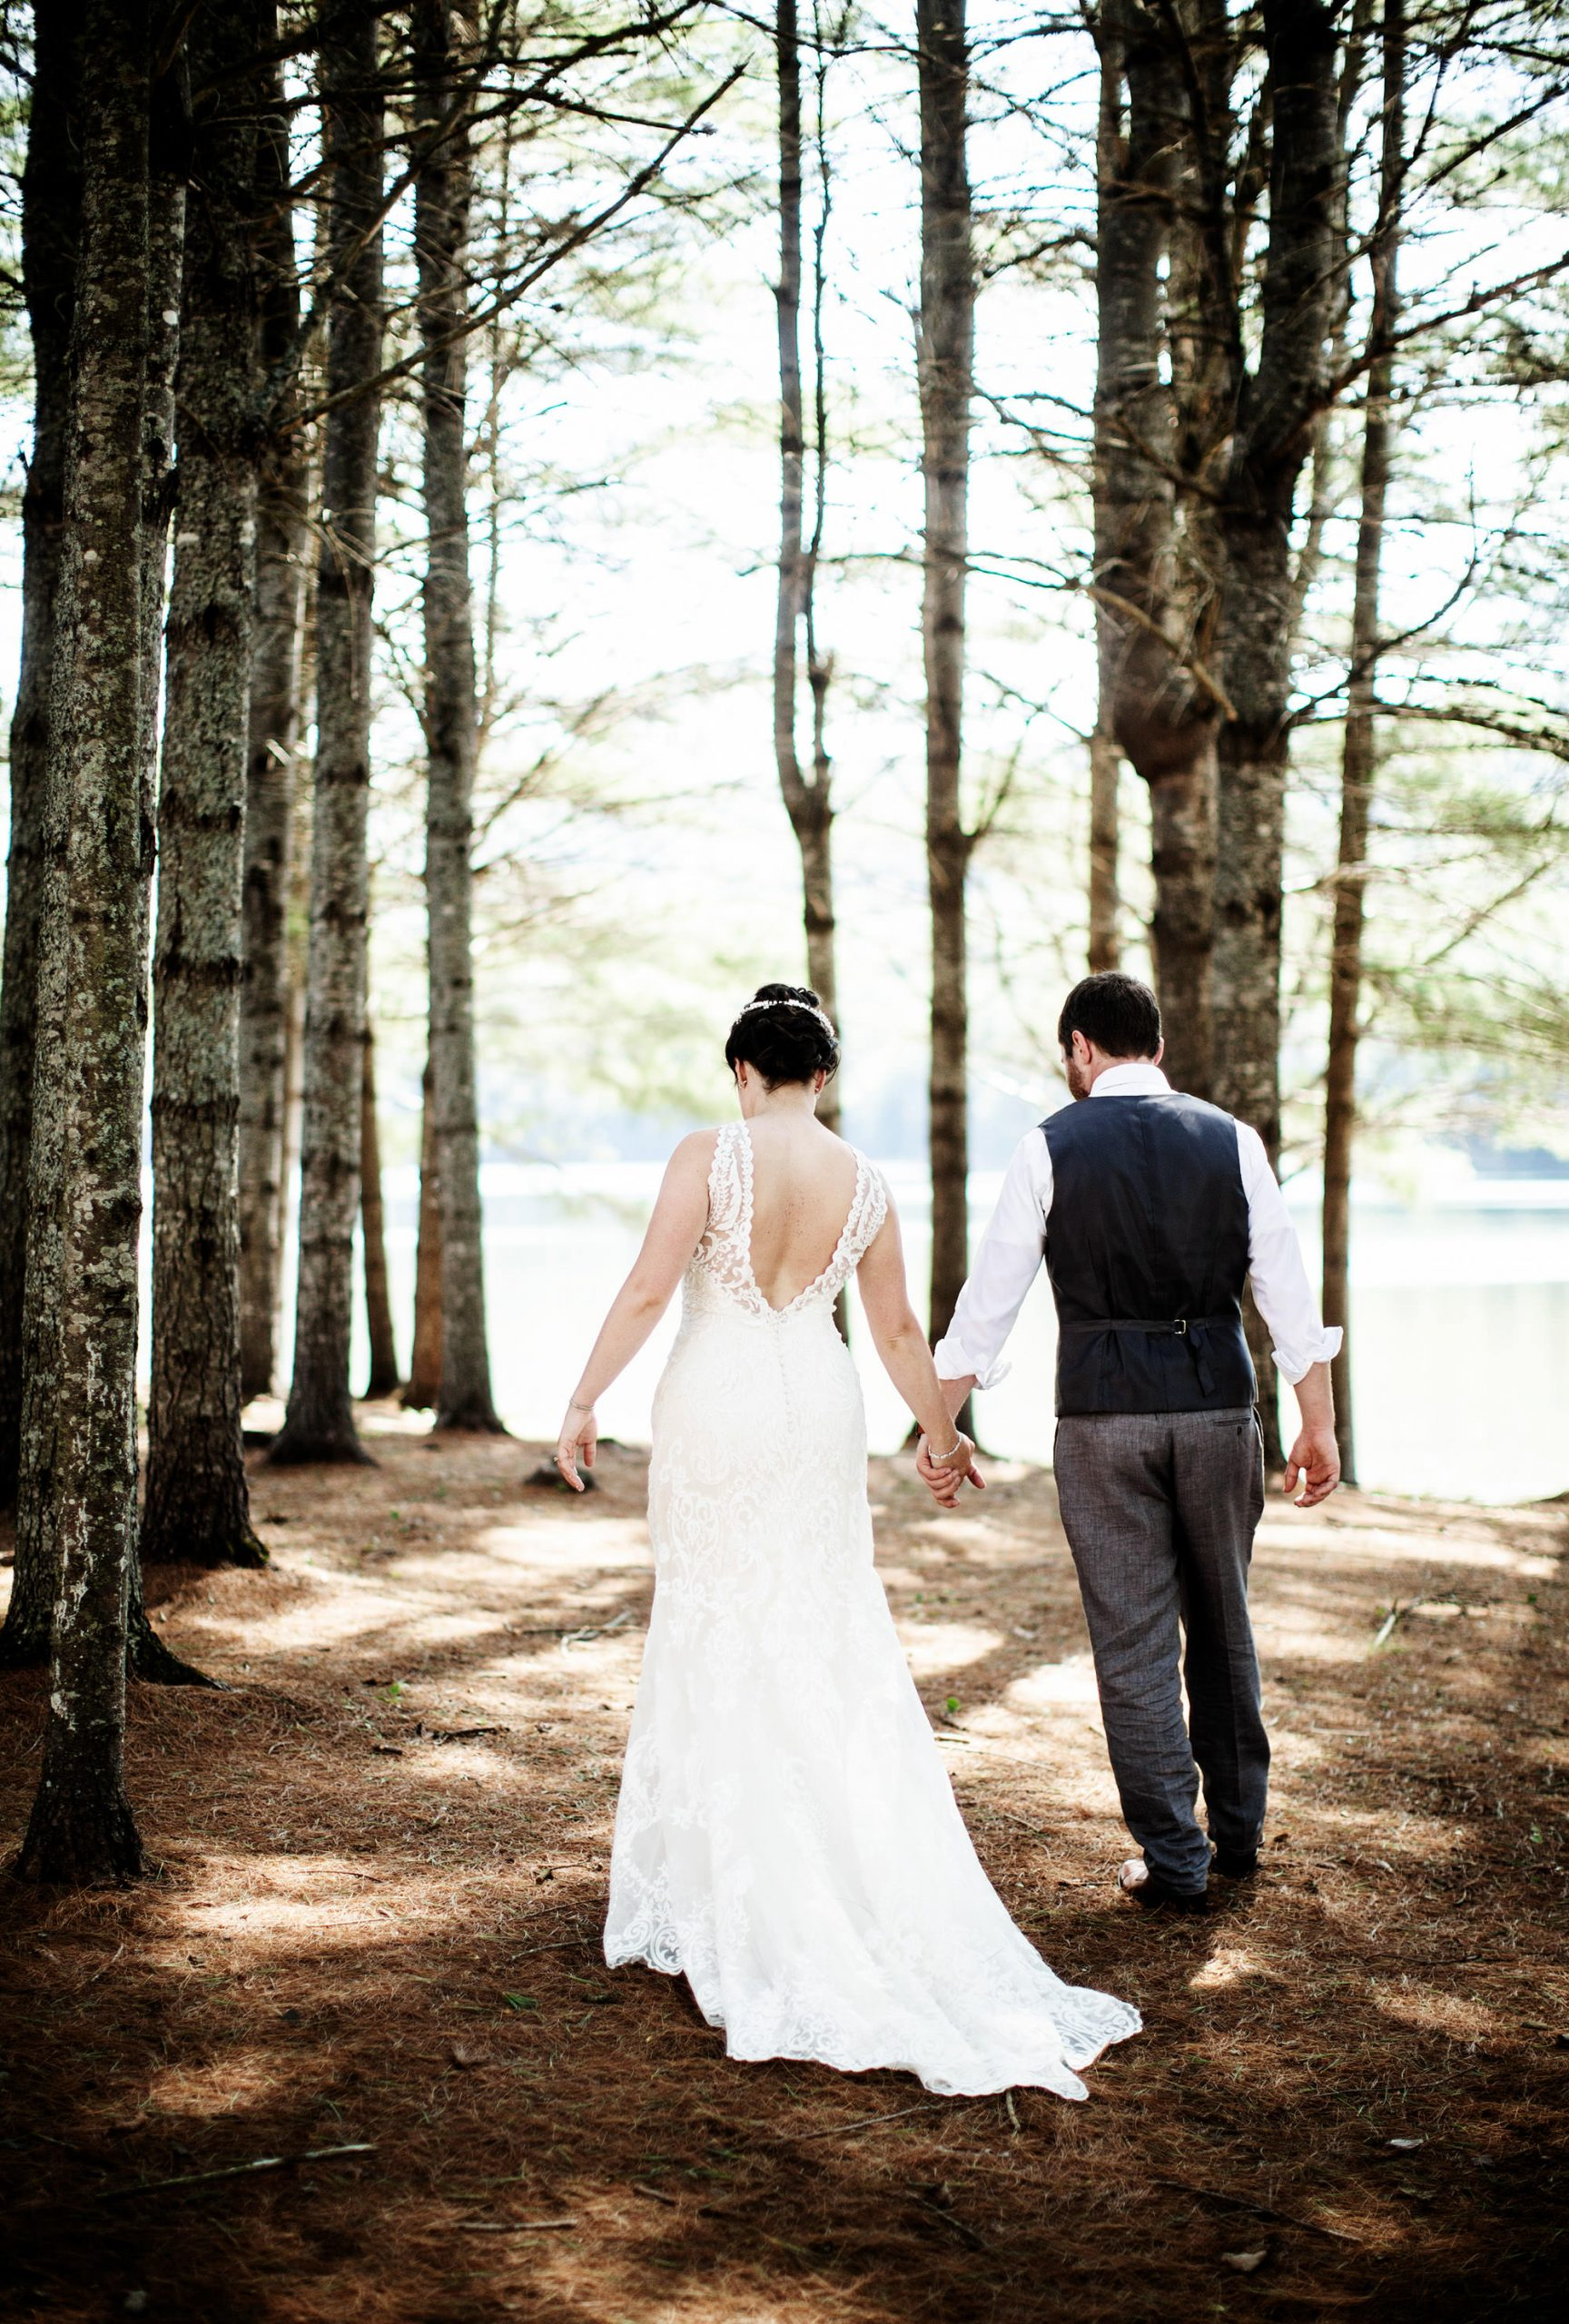 Maine Lakeside Cabin wedding  I  The bride and groom walk through the trees along Wyman Lake.